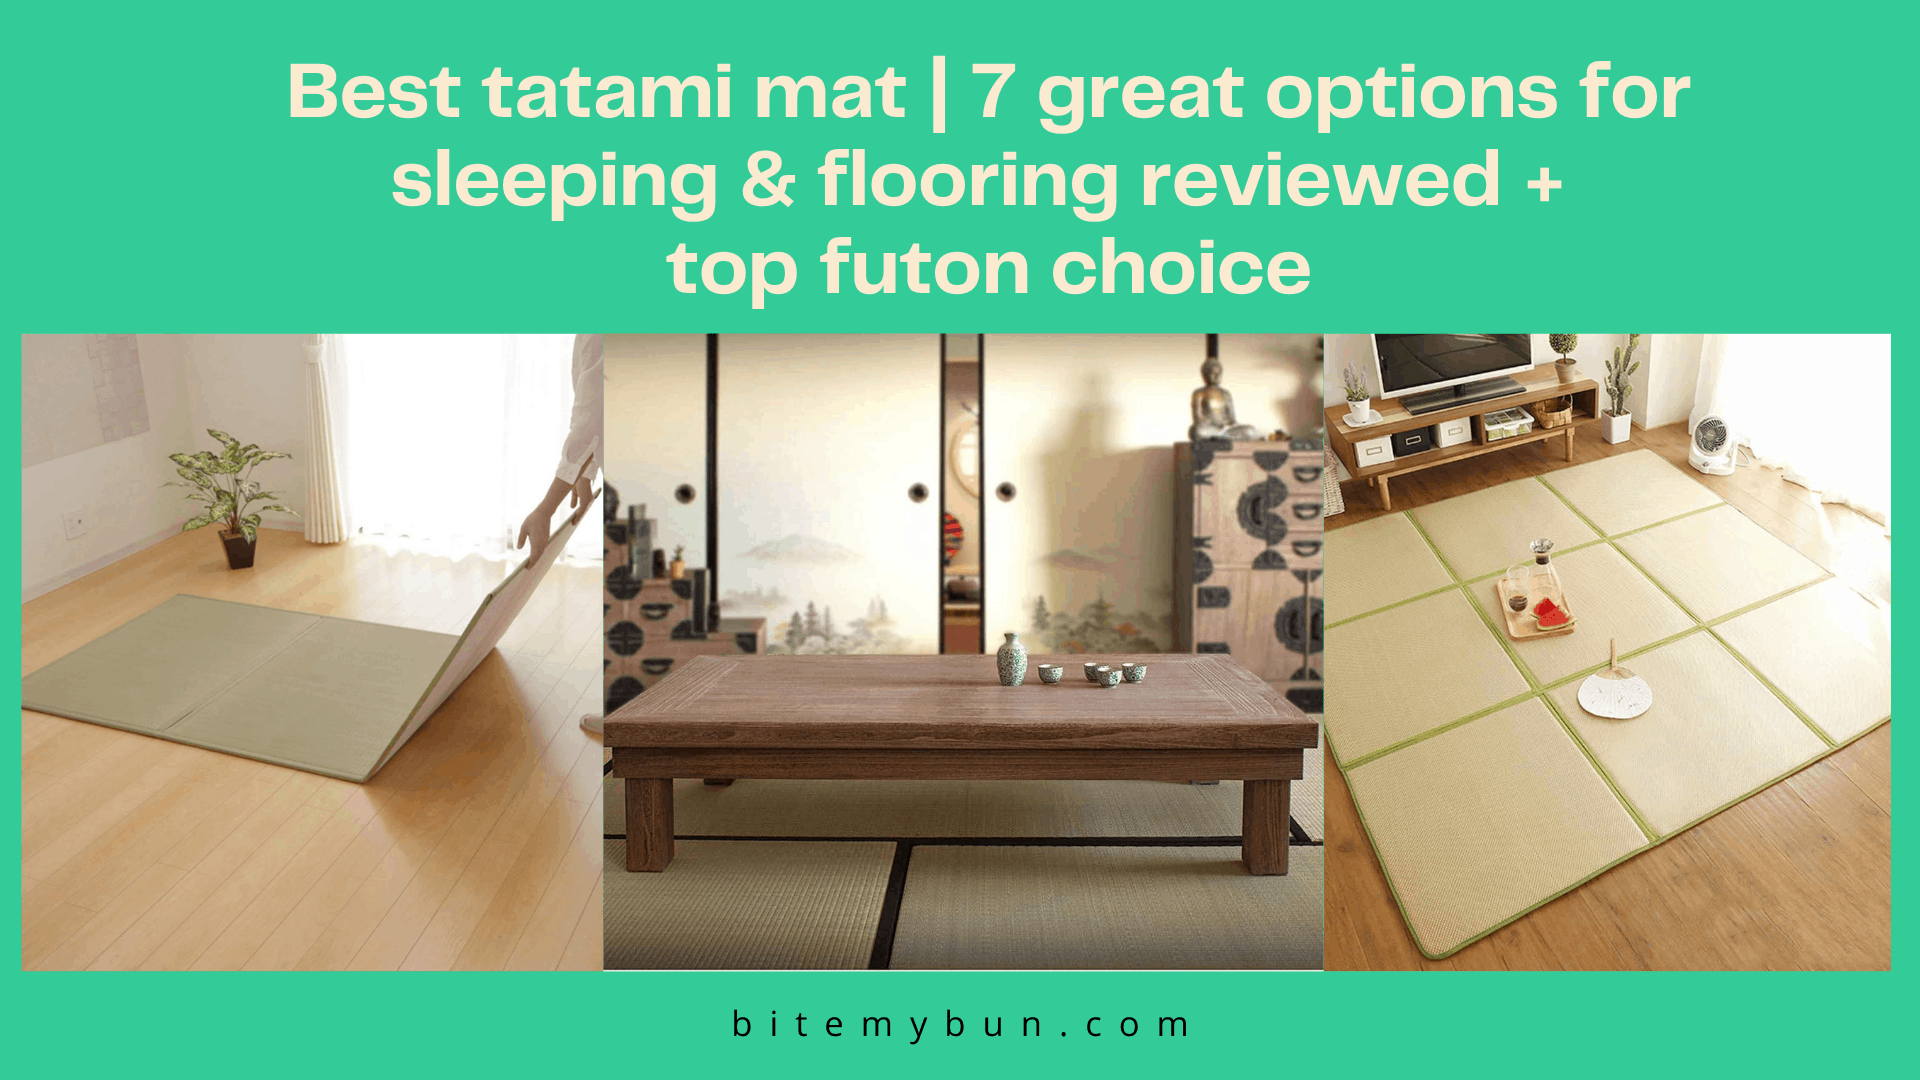 Best tatami mat | 7 great options for sleeping & flooring reviewed +top futon choice